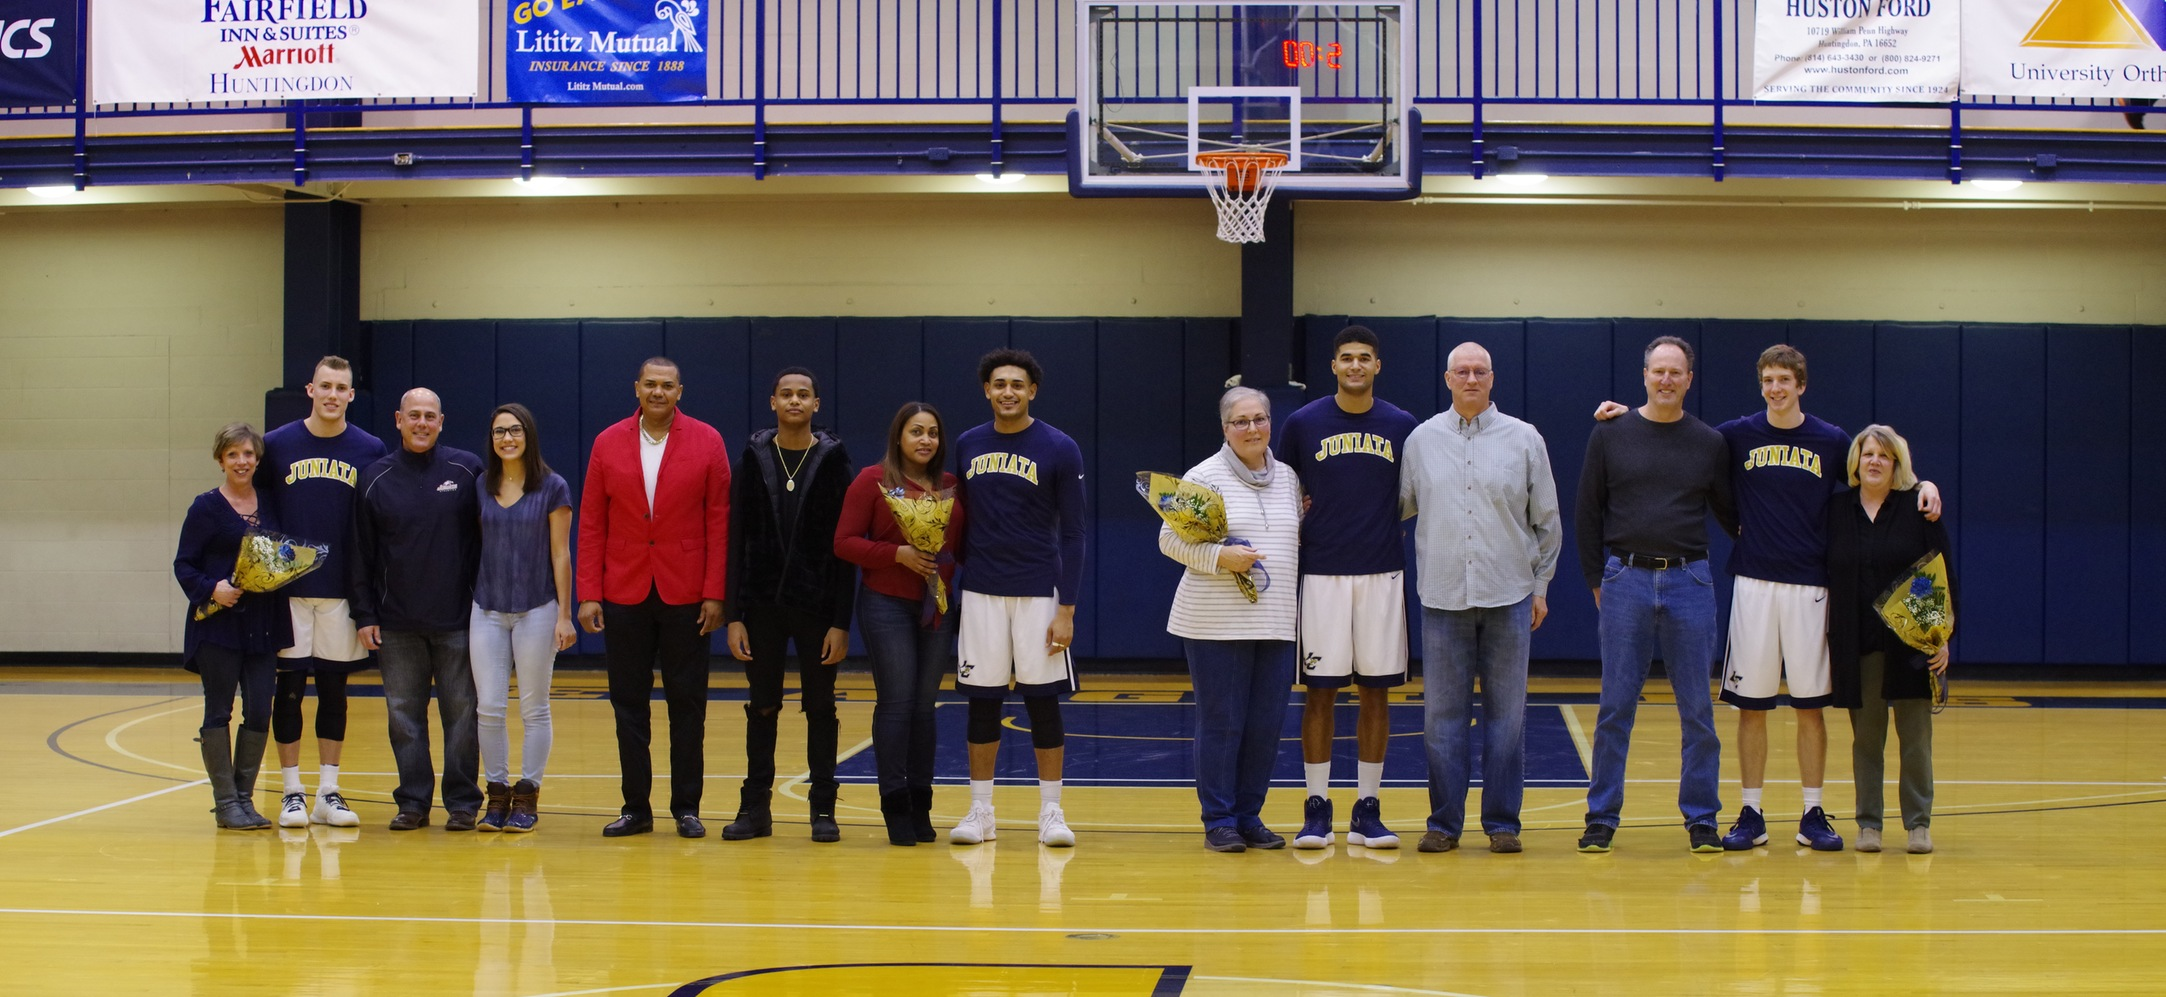 Juniata Men Win on Senior Day, Finish Atop the Landmark